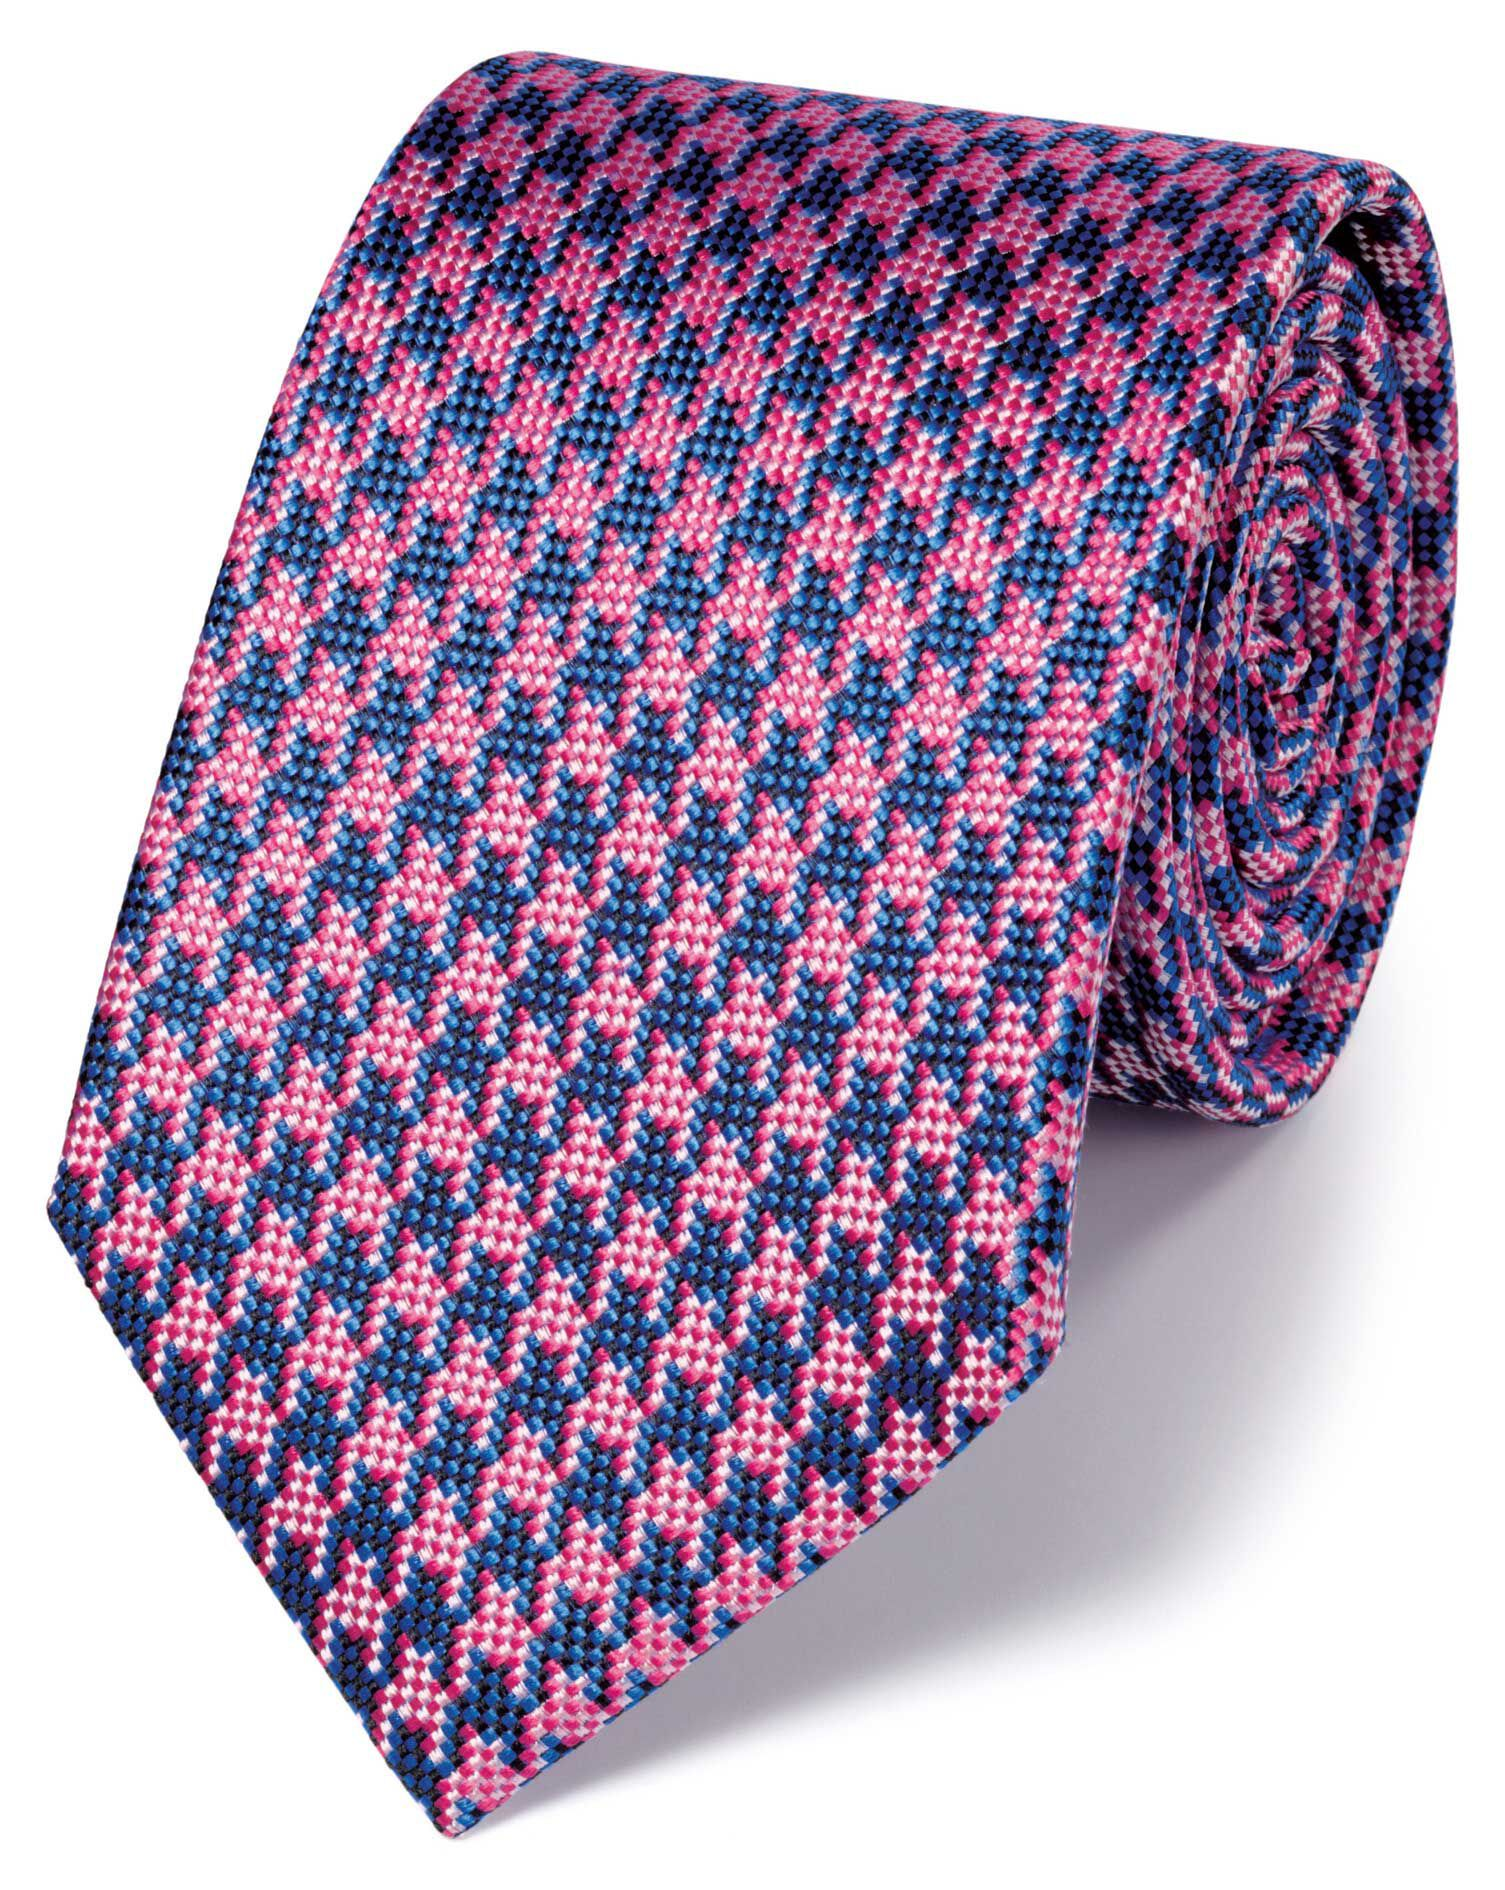 Royal and Pink Silk Houndstooth Classic Tie Size OSFA by Charles Tyrwhitt